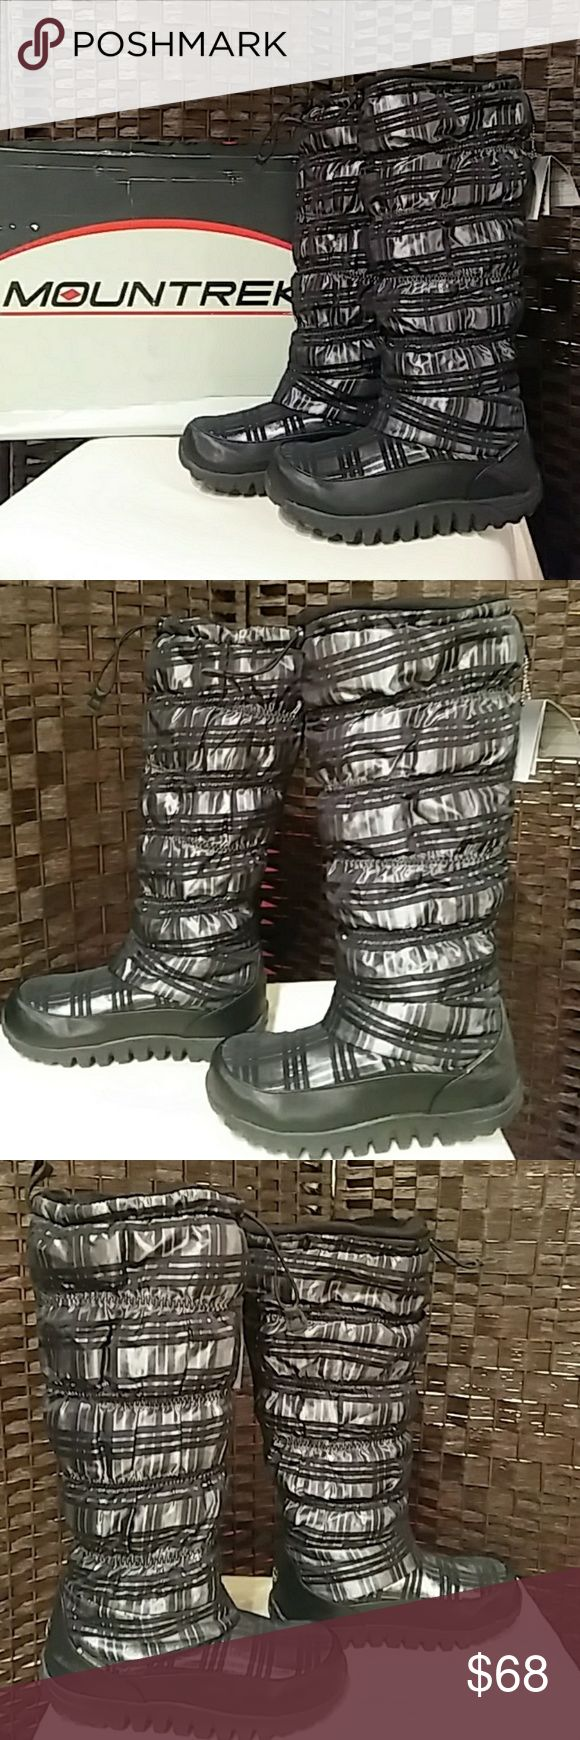 """TALL WINTER BOOTS                            6.5-7 *NEW IN slightly DAMAGED BOX (Box was damaged in the moving shuffle from Chicago to Dallas but still well intact). MOUNTREK SIZE 7 (Run slightly smaller - a 6.5 or someone who runs between 6.5 & 7 will most likely do best in these boots). 16.5"""" tall resting on a 1"""" platform for a boost in height. Boots name is """"Lisa Puff Tall  Plaid Black - and that pretty much sums it up! Mountrek Shoes Winter & Rain Boots"""